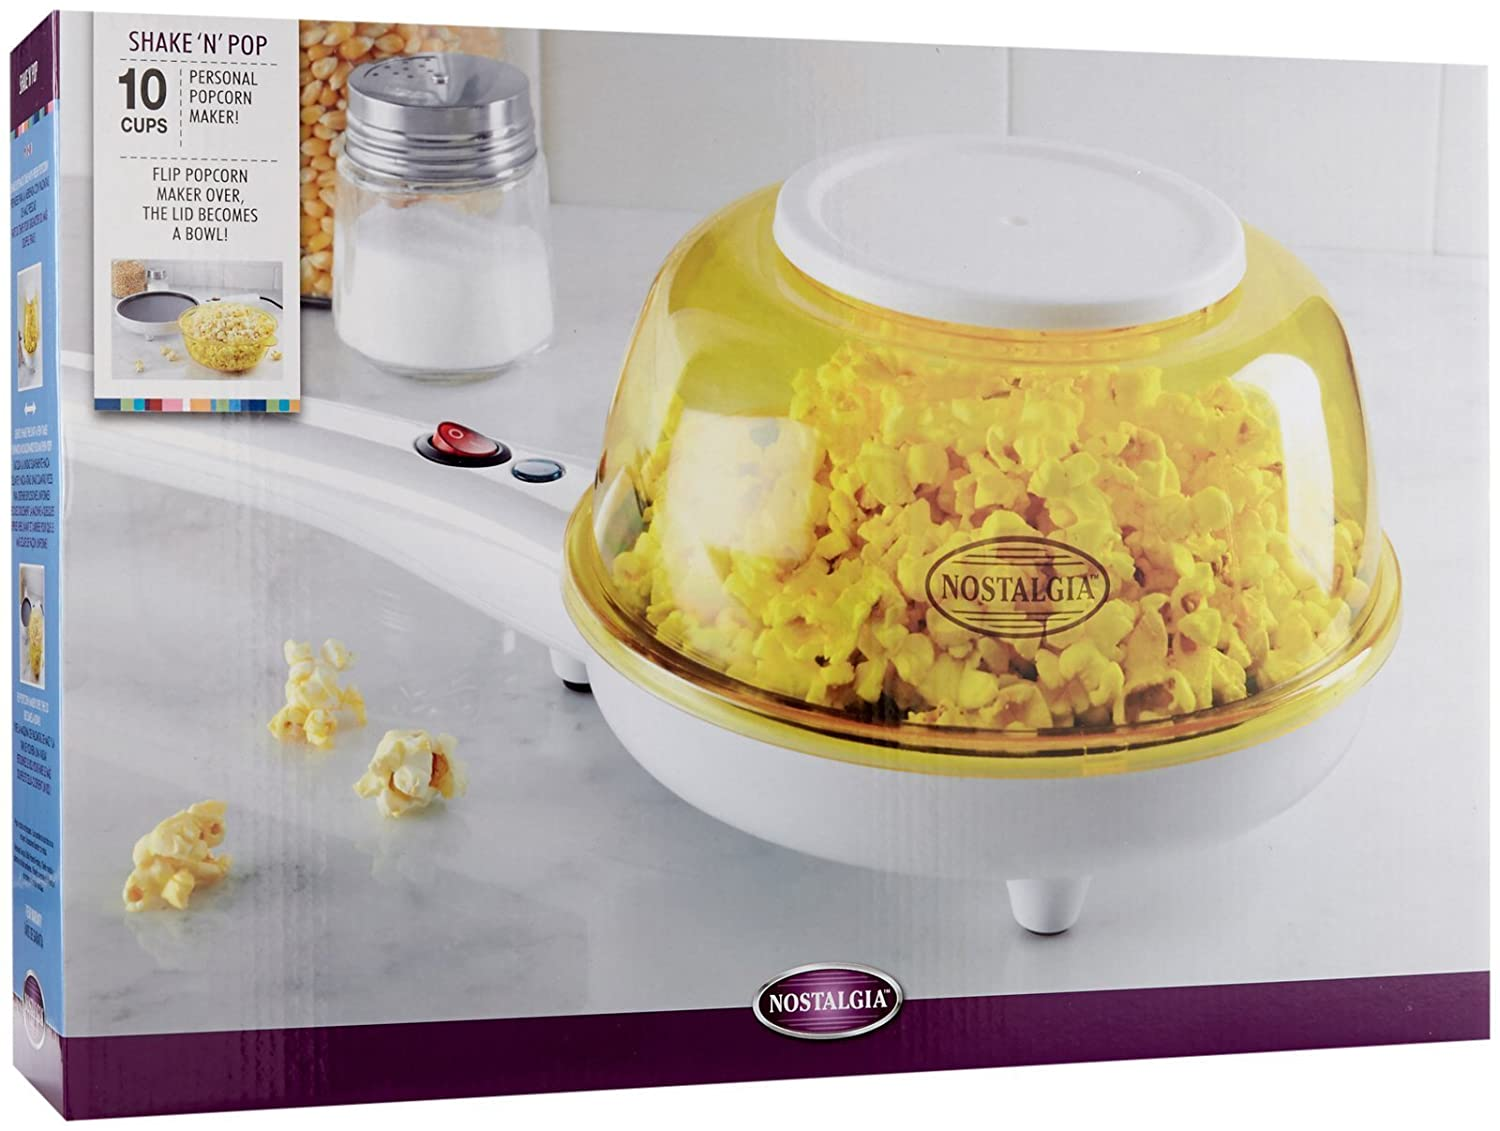 Amazon.com: SNP100 Nostalgia SNP100 ShakeN Pop Popcorn Popper, White/Yellow: Kitchen & Dining